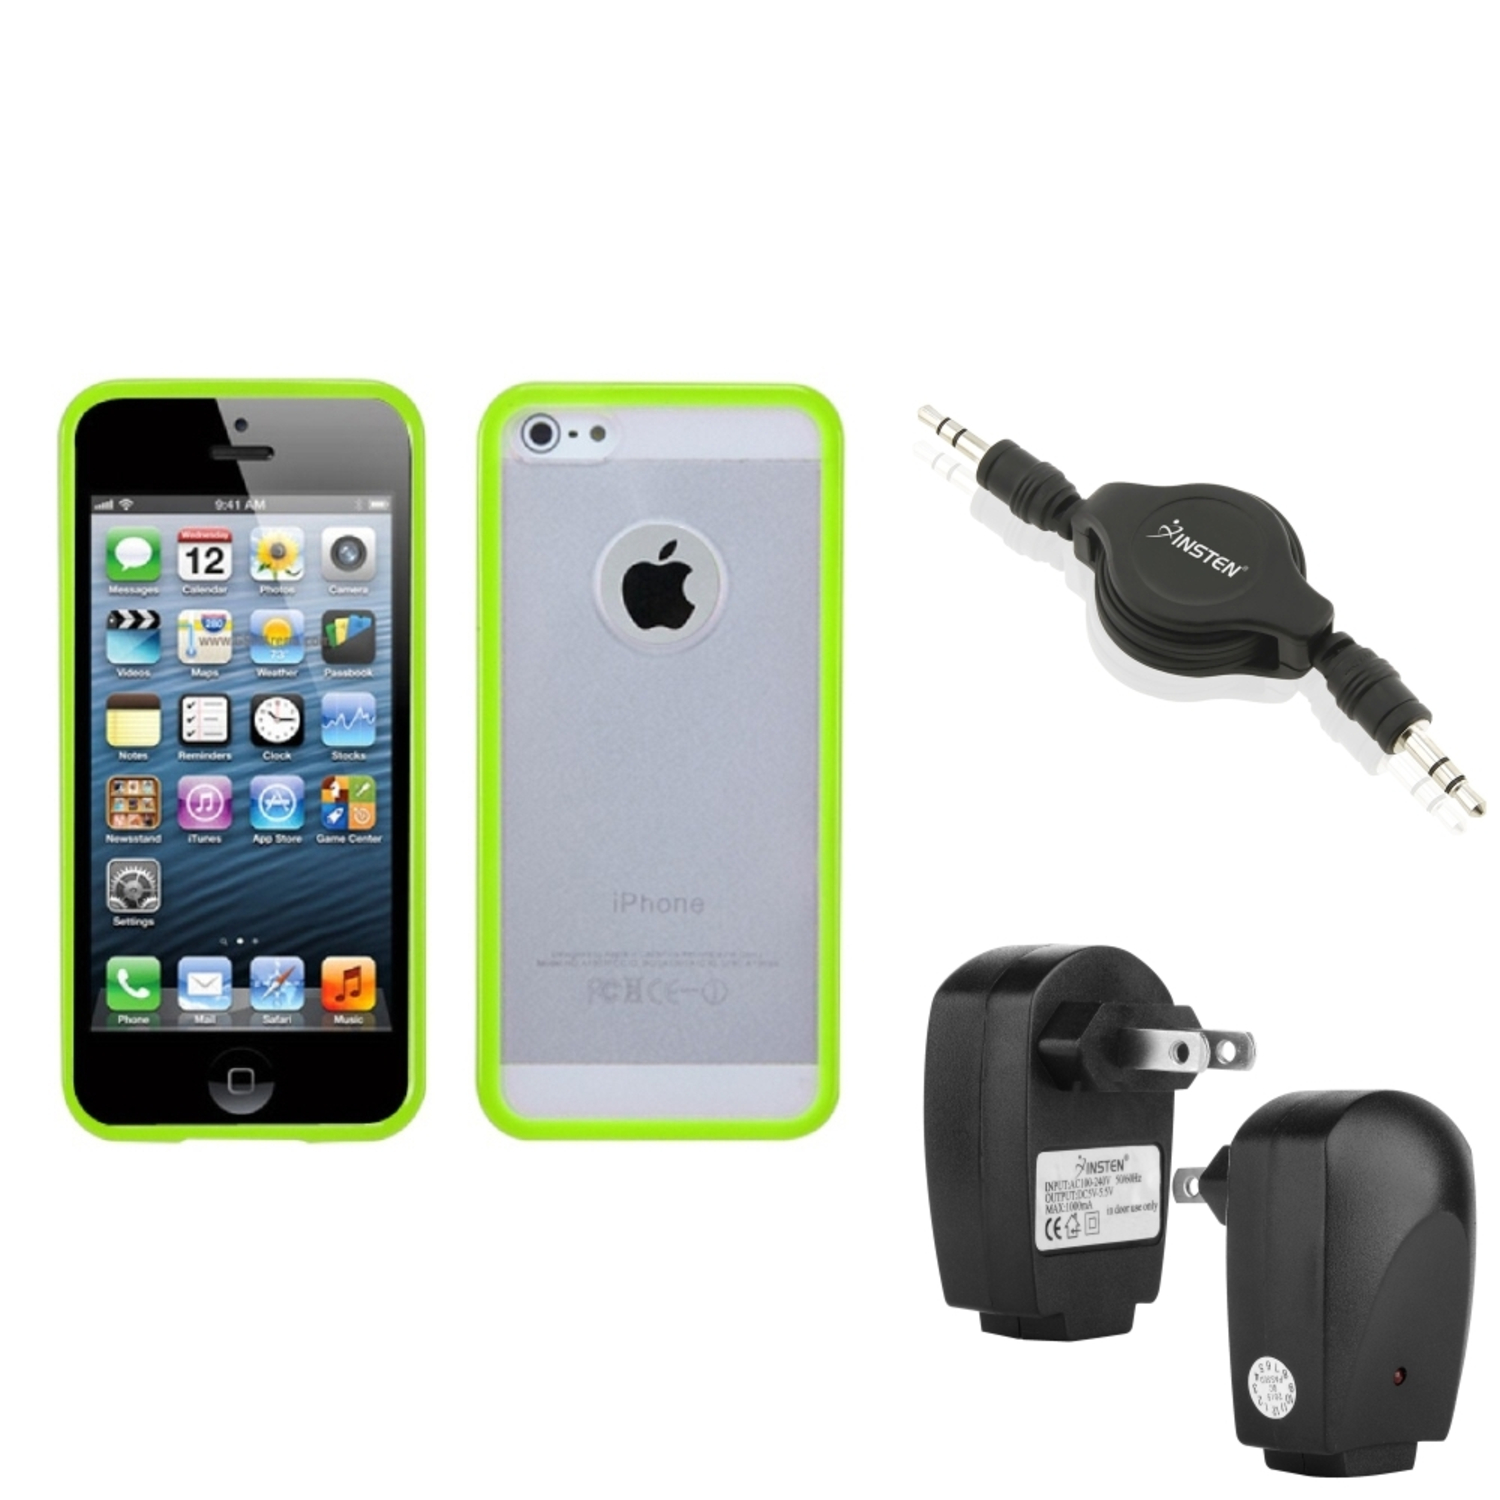 Insten Wall Charger+Audio Cable+Green CLEAR GUMMY TPU SOFT TRIM CASE FOR iPHONE 5 G